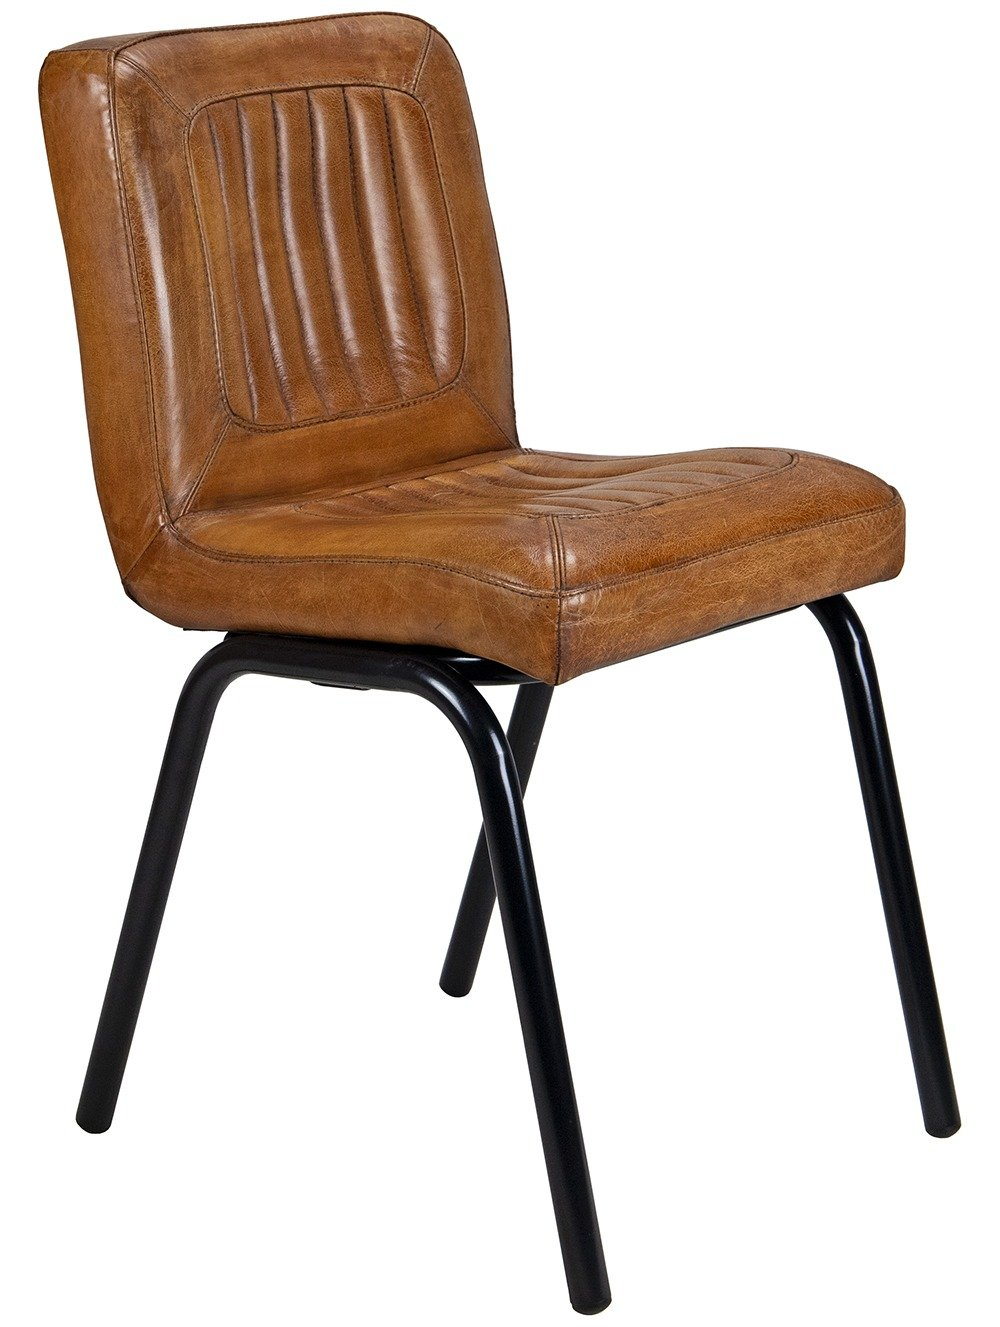 Jenson Side Chair from a 45 degree angle